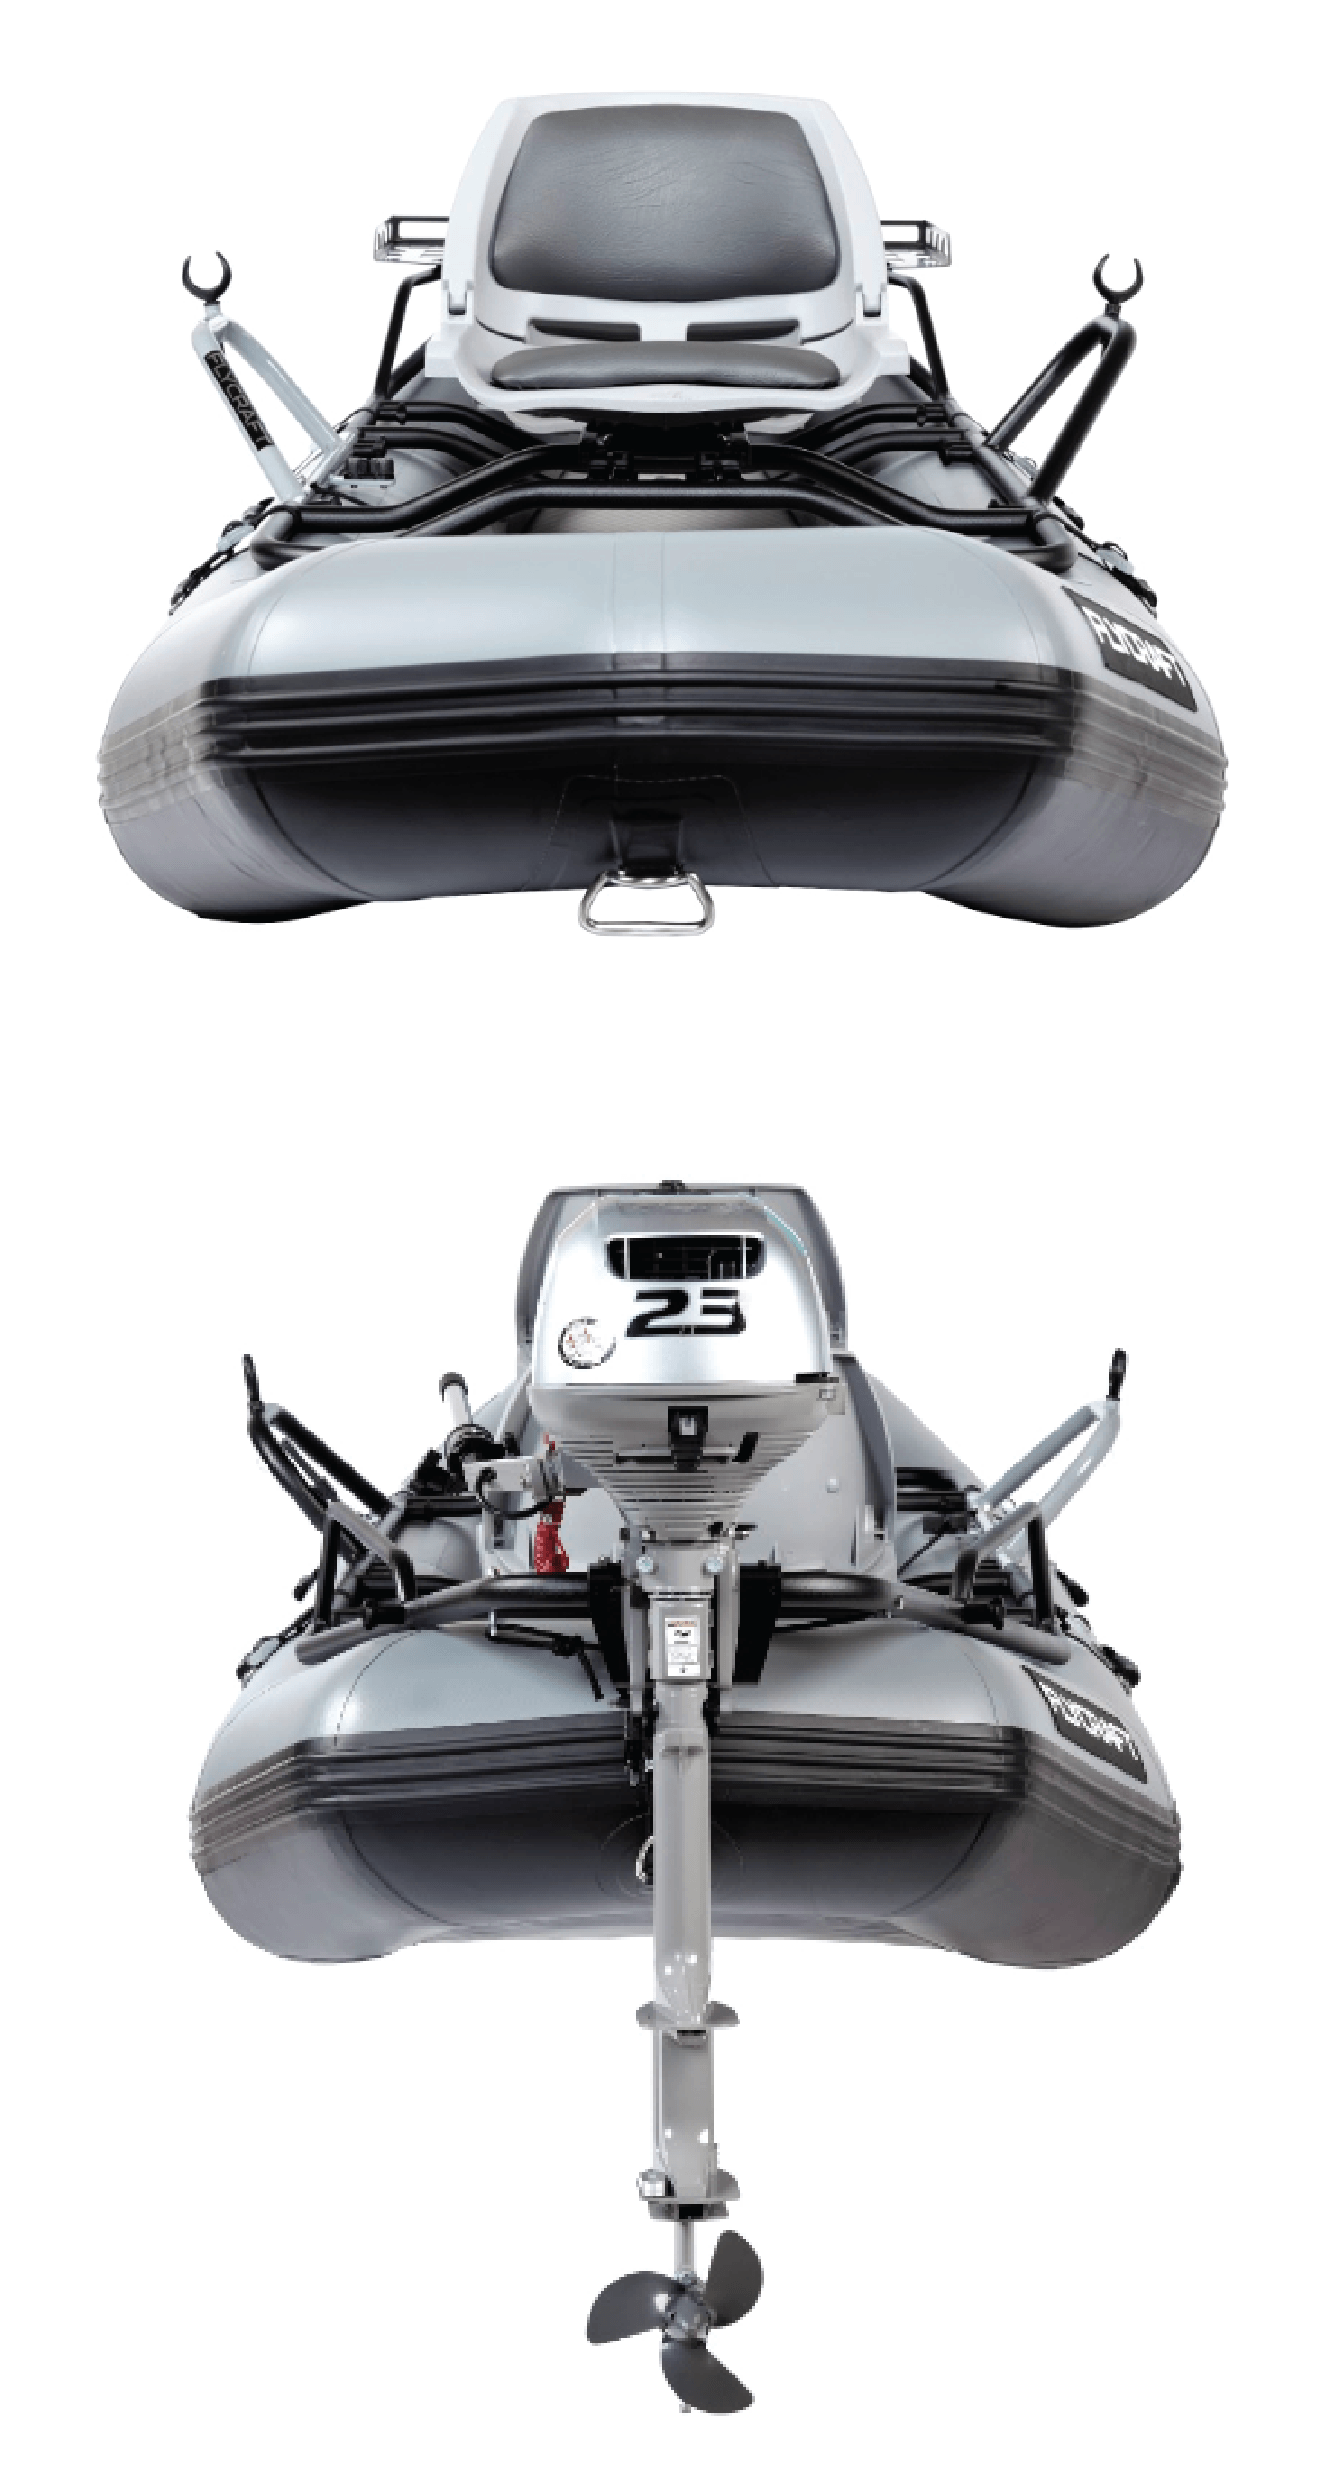 Drift Boat + Inflatable Fishing Boat = Stealth Boat